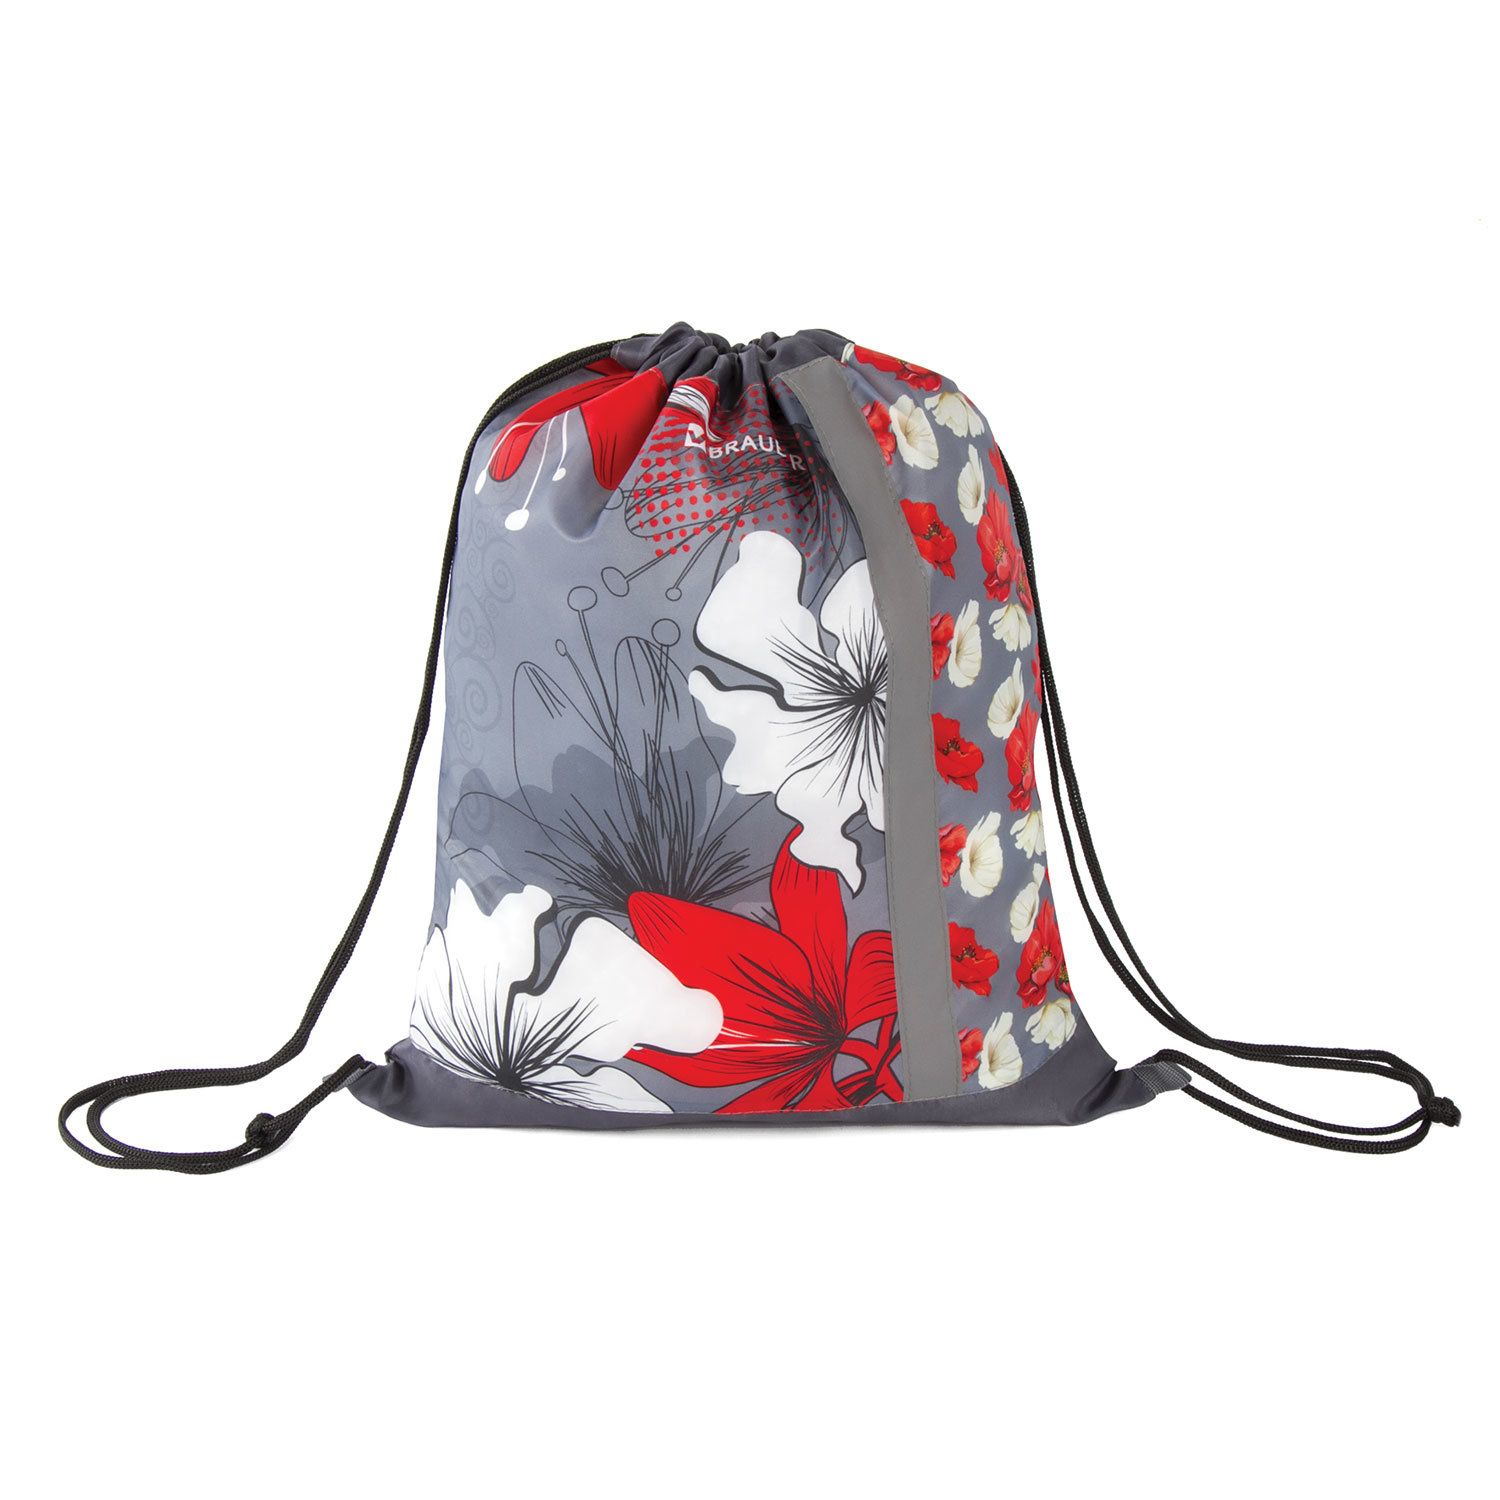 Shoe bag BRAUBERG 1 compartment, reflective strip, with the mesh 46 * 36 cm, Flowers